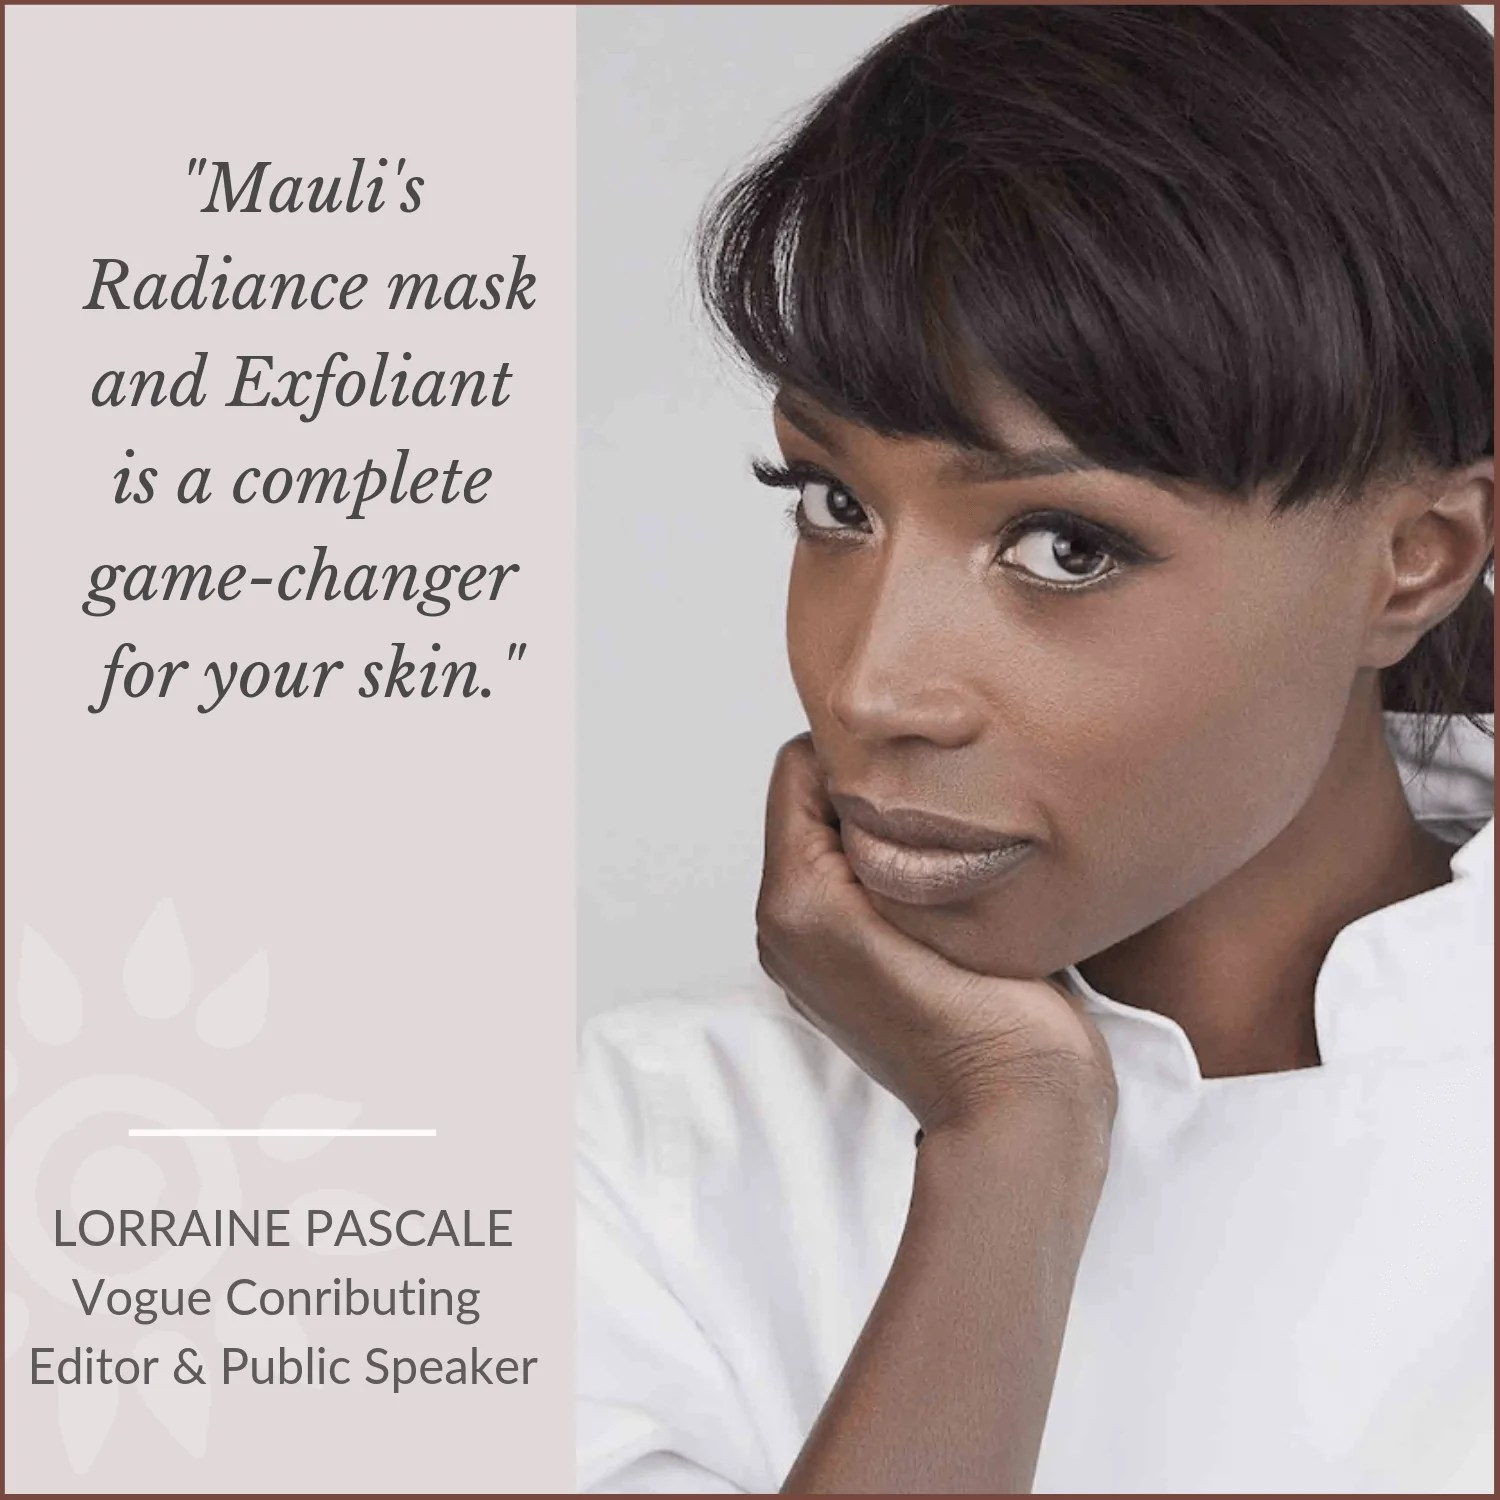 Cocina Lorraine Pascale 99 Lorraine Pascale Gusto 16 Things You Didn T Know About